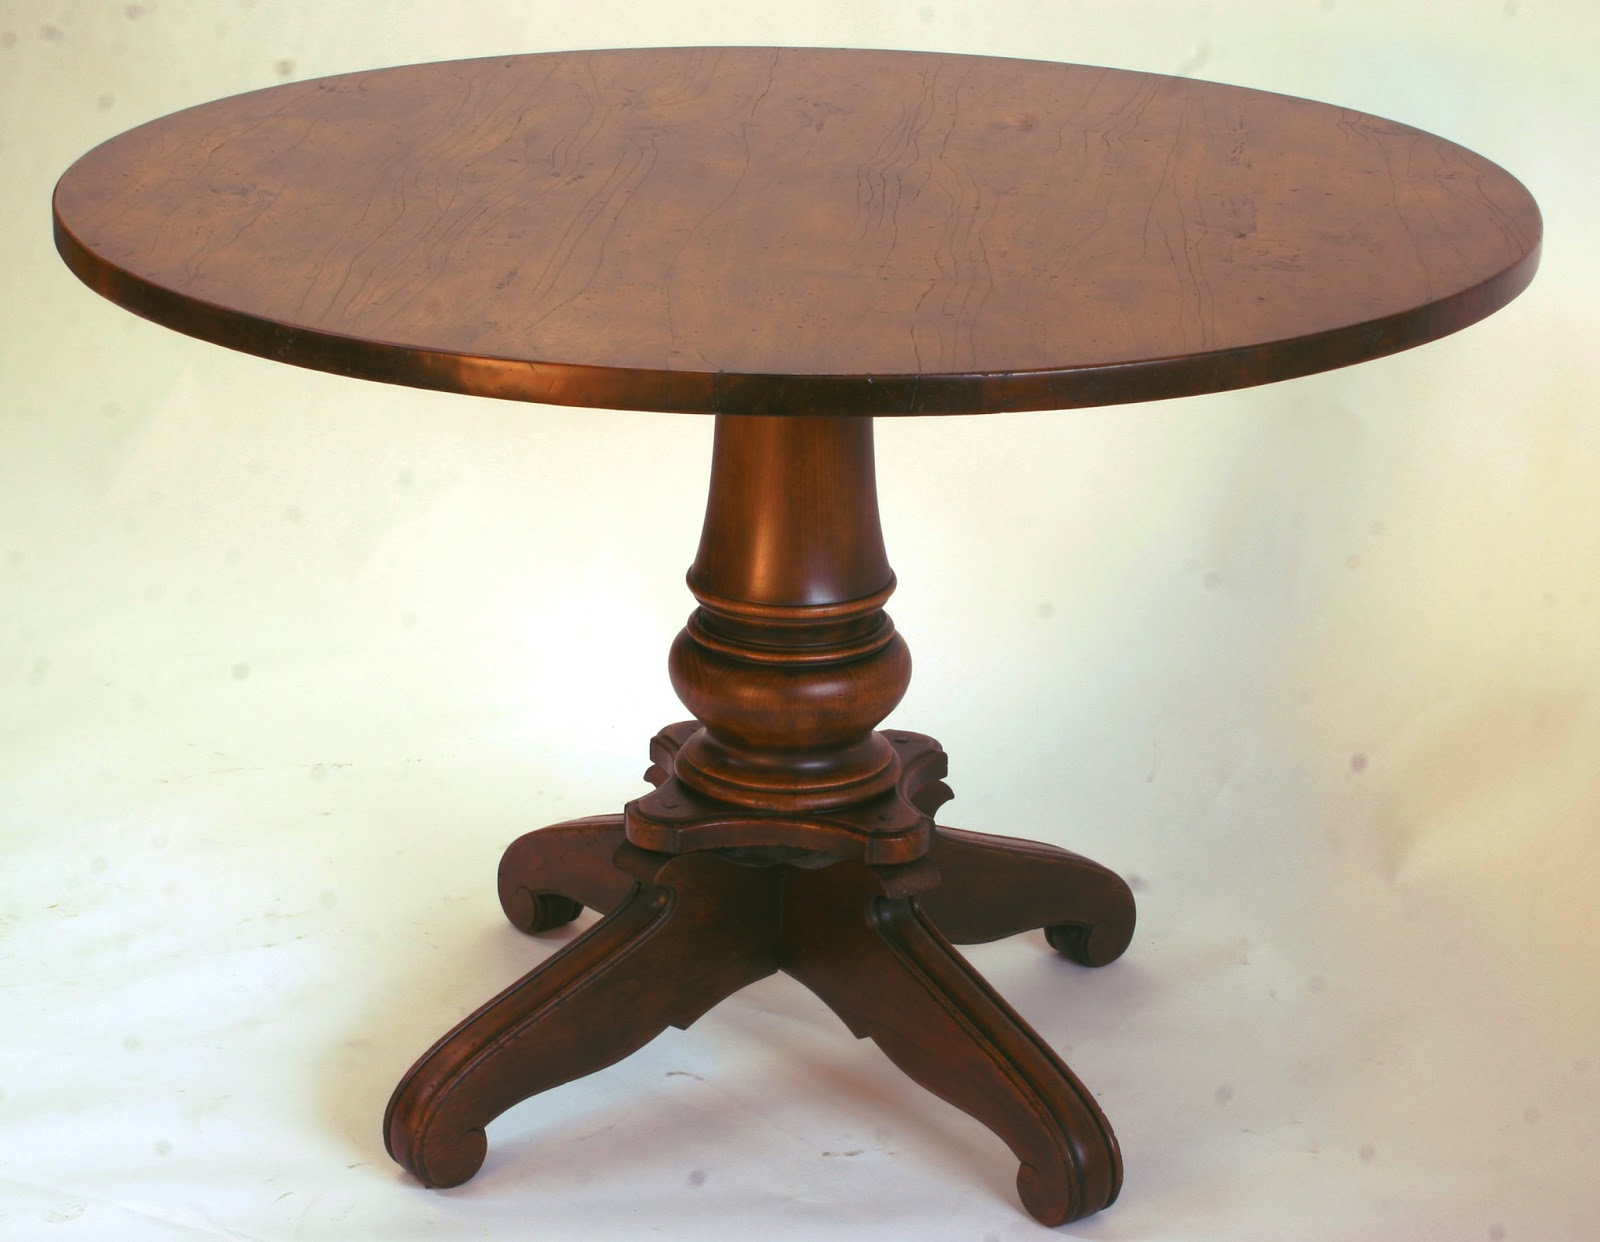 round French provincial breakfast nook table with antiqued finish in a medium walnut tone